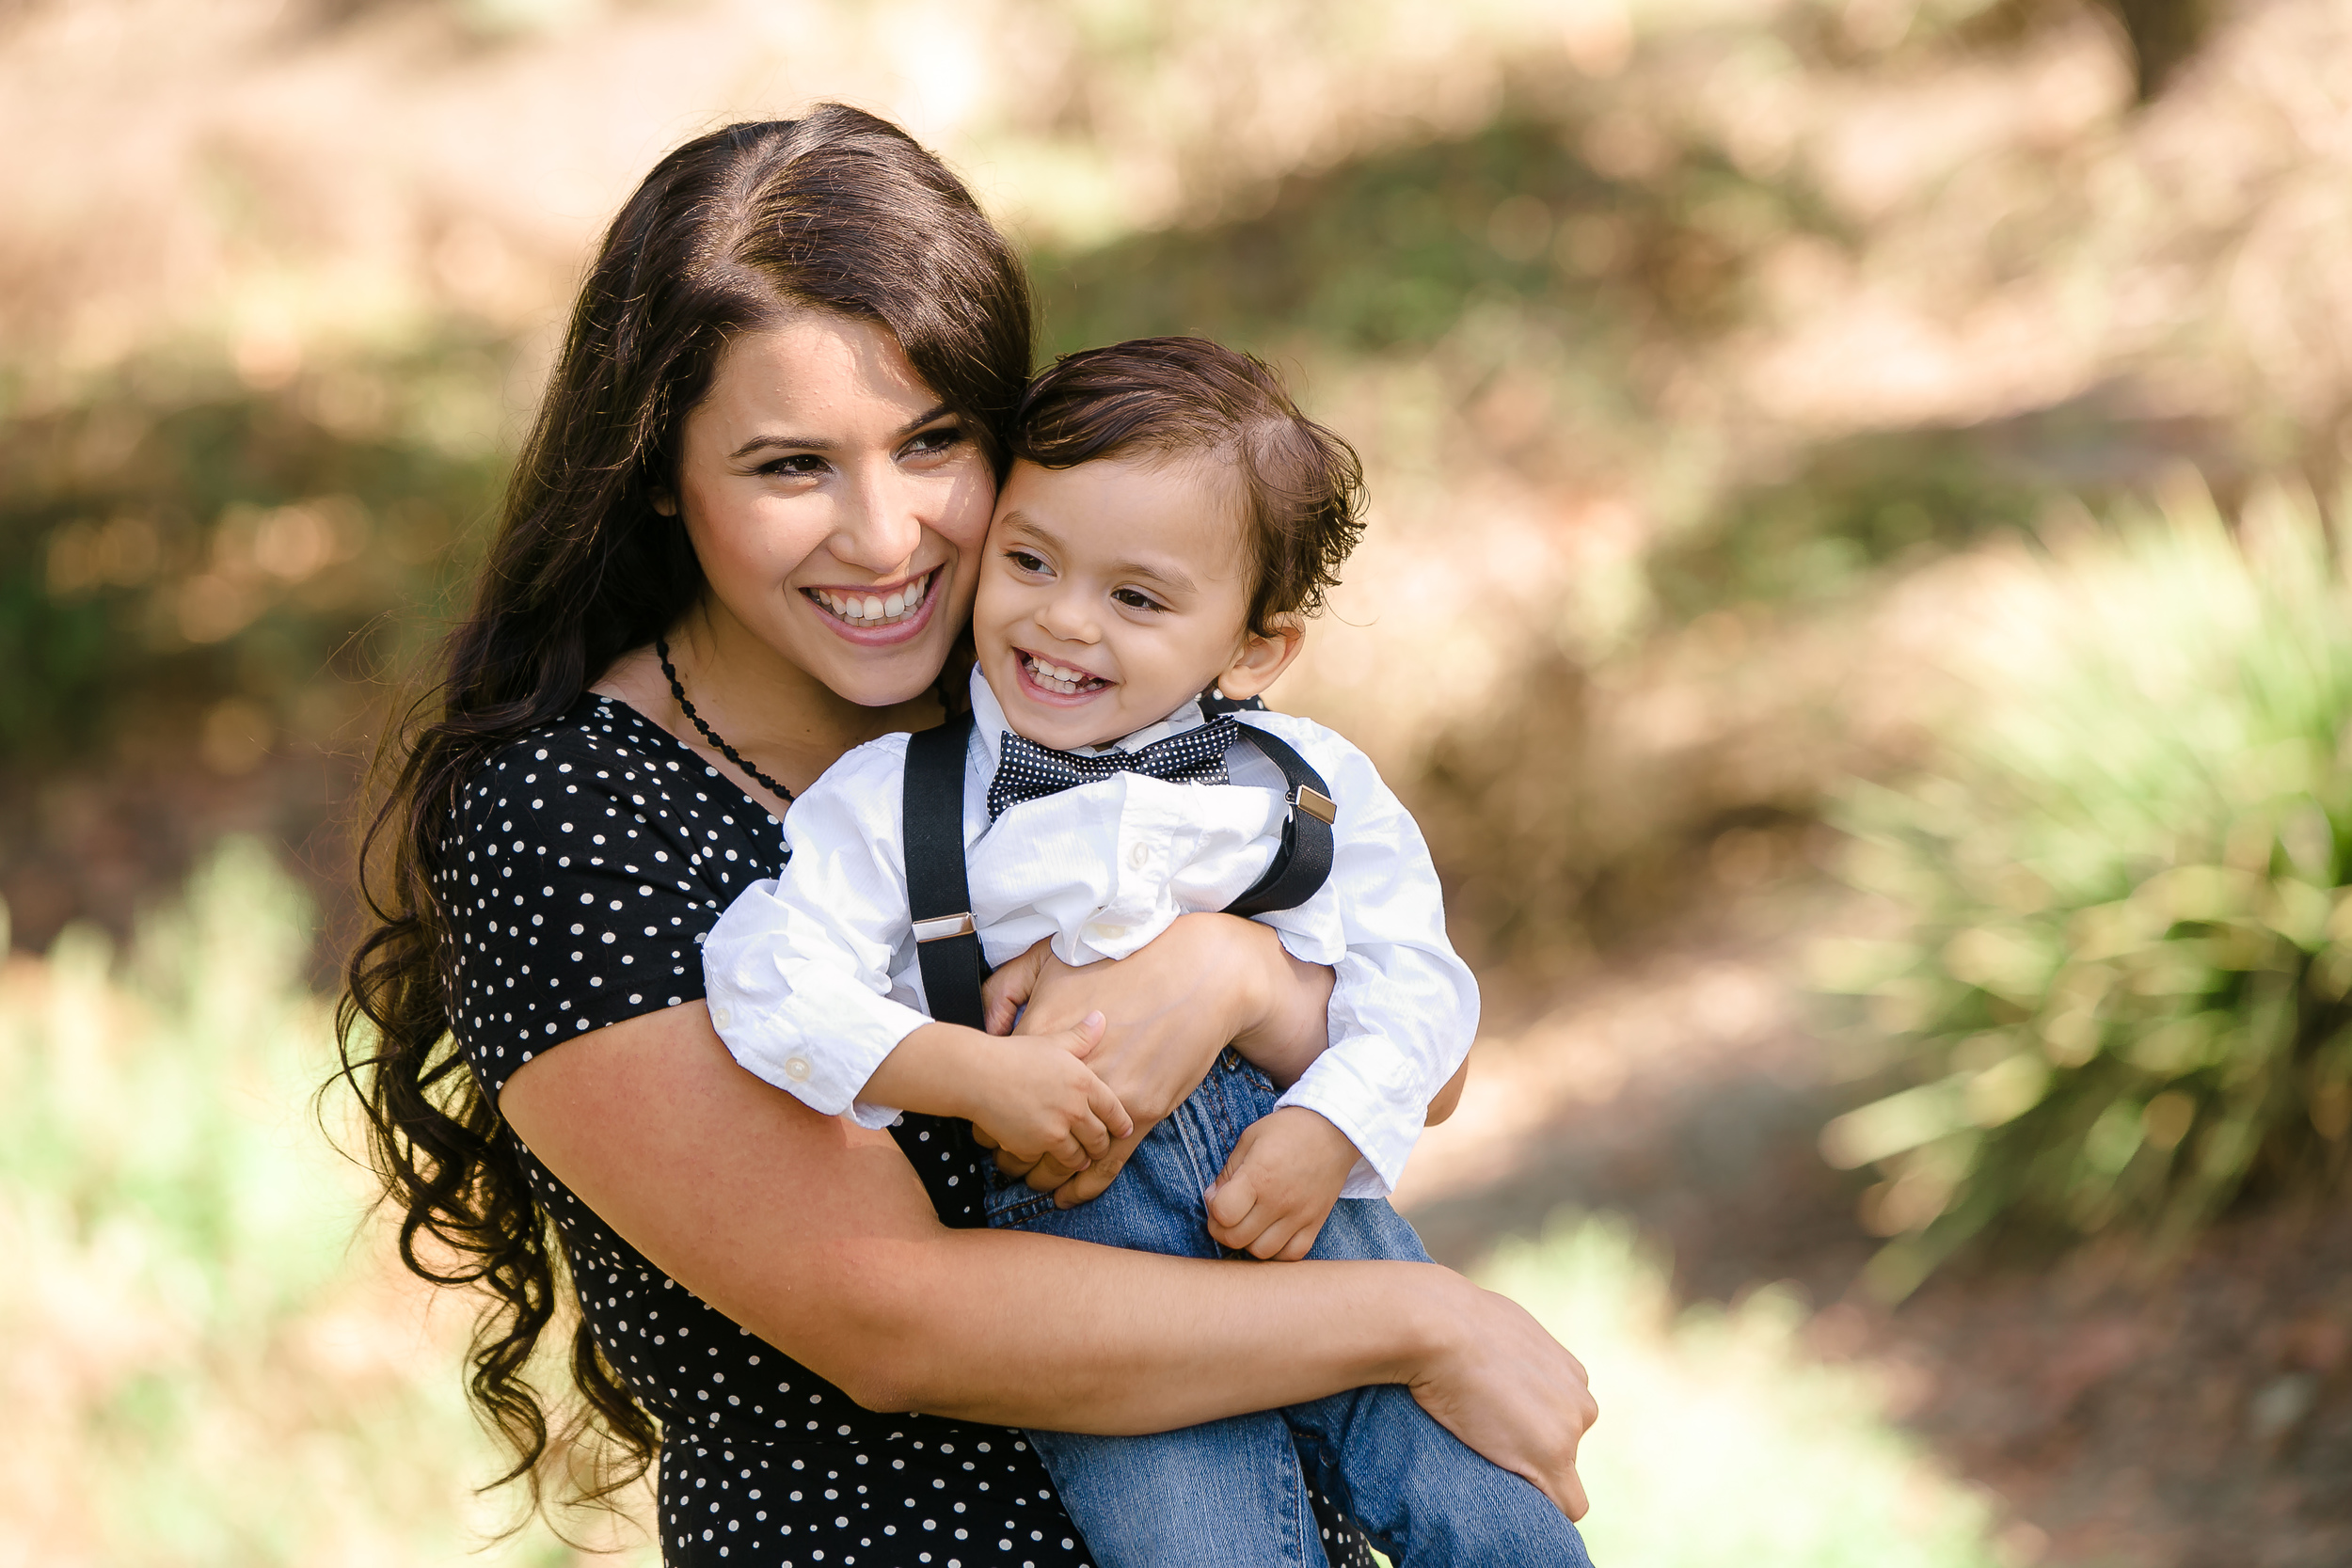 Ladera Ranch Lifestyle Family Portrait Photographer, Bowties & suspenders, Black and white family photo inspiration, Gina Holt Photography, Orange County Family Photos, OC Babies, Children's photographer, Love, BabyLove, cutiepie, Ladera Ranch Baby Photos, In Home Photography, Family, casual, relaxed, fun, lifestyle, love, Los Angeles Family Photographer, Orange County Family Photographer, siblings, brother, sister, mother and daughter, father and son, mother and son, father and daughters, babies, what to wear, newborn photography, maternity photography, couples, Baby, grow with me, Fall Family Portraits, Spring family portraits, Winter family portraits, Summer family portraits, Baby photos, family portrait, family photography, family photographer, candid photography, newborn photography, newborn photographer, maternity photography, family photos, newborn baby photos, baby portraits, family portrait photography, family, portrait photographer, family photo shoot, infant photography, baby photographer, photography pricing, baby photoshoot, maternity photos, pregnancy photos, kids photos, portrait photographers, family photography prices, newborn pictures, family portrait photographer, children photos, Baby Photographers in Los Angeles CA, Family Portrait in Los Angeles CA, Family Portrait Photography in Los Angeles, professional portrait photography, professional photographers, new baby photos, professional family photos, best portrait photographers, toddler photography, best newborn photography, best family photographer, professional pregnancy photos, top portrait photographers, outdoor family portraits, baby photography at home, professional baby photos, find photographers, Family portrait pricing packages, Family portrait photography package, family portrait photography prices, family photo session prices, what to wear for a family session, tips on what to wear for family portraits, guide for a successful photo session with toddlers, photo session with toddlers